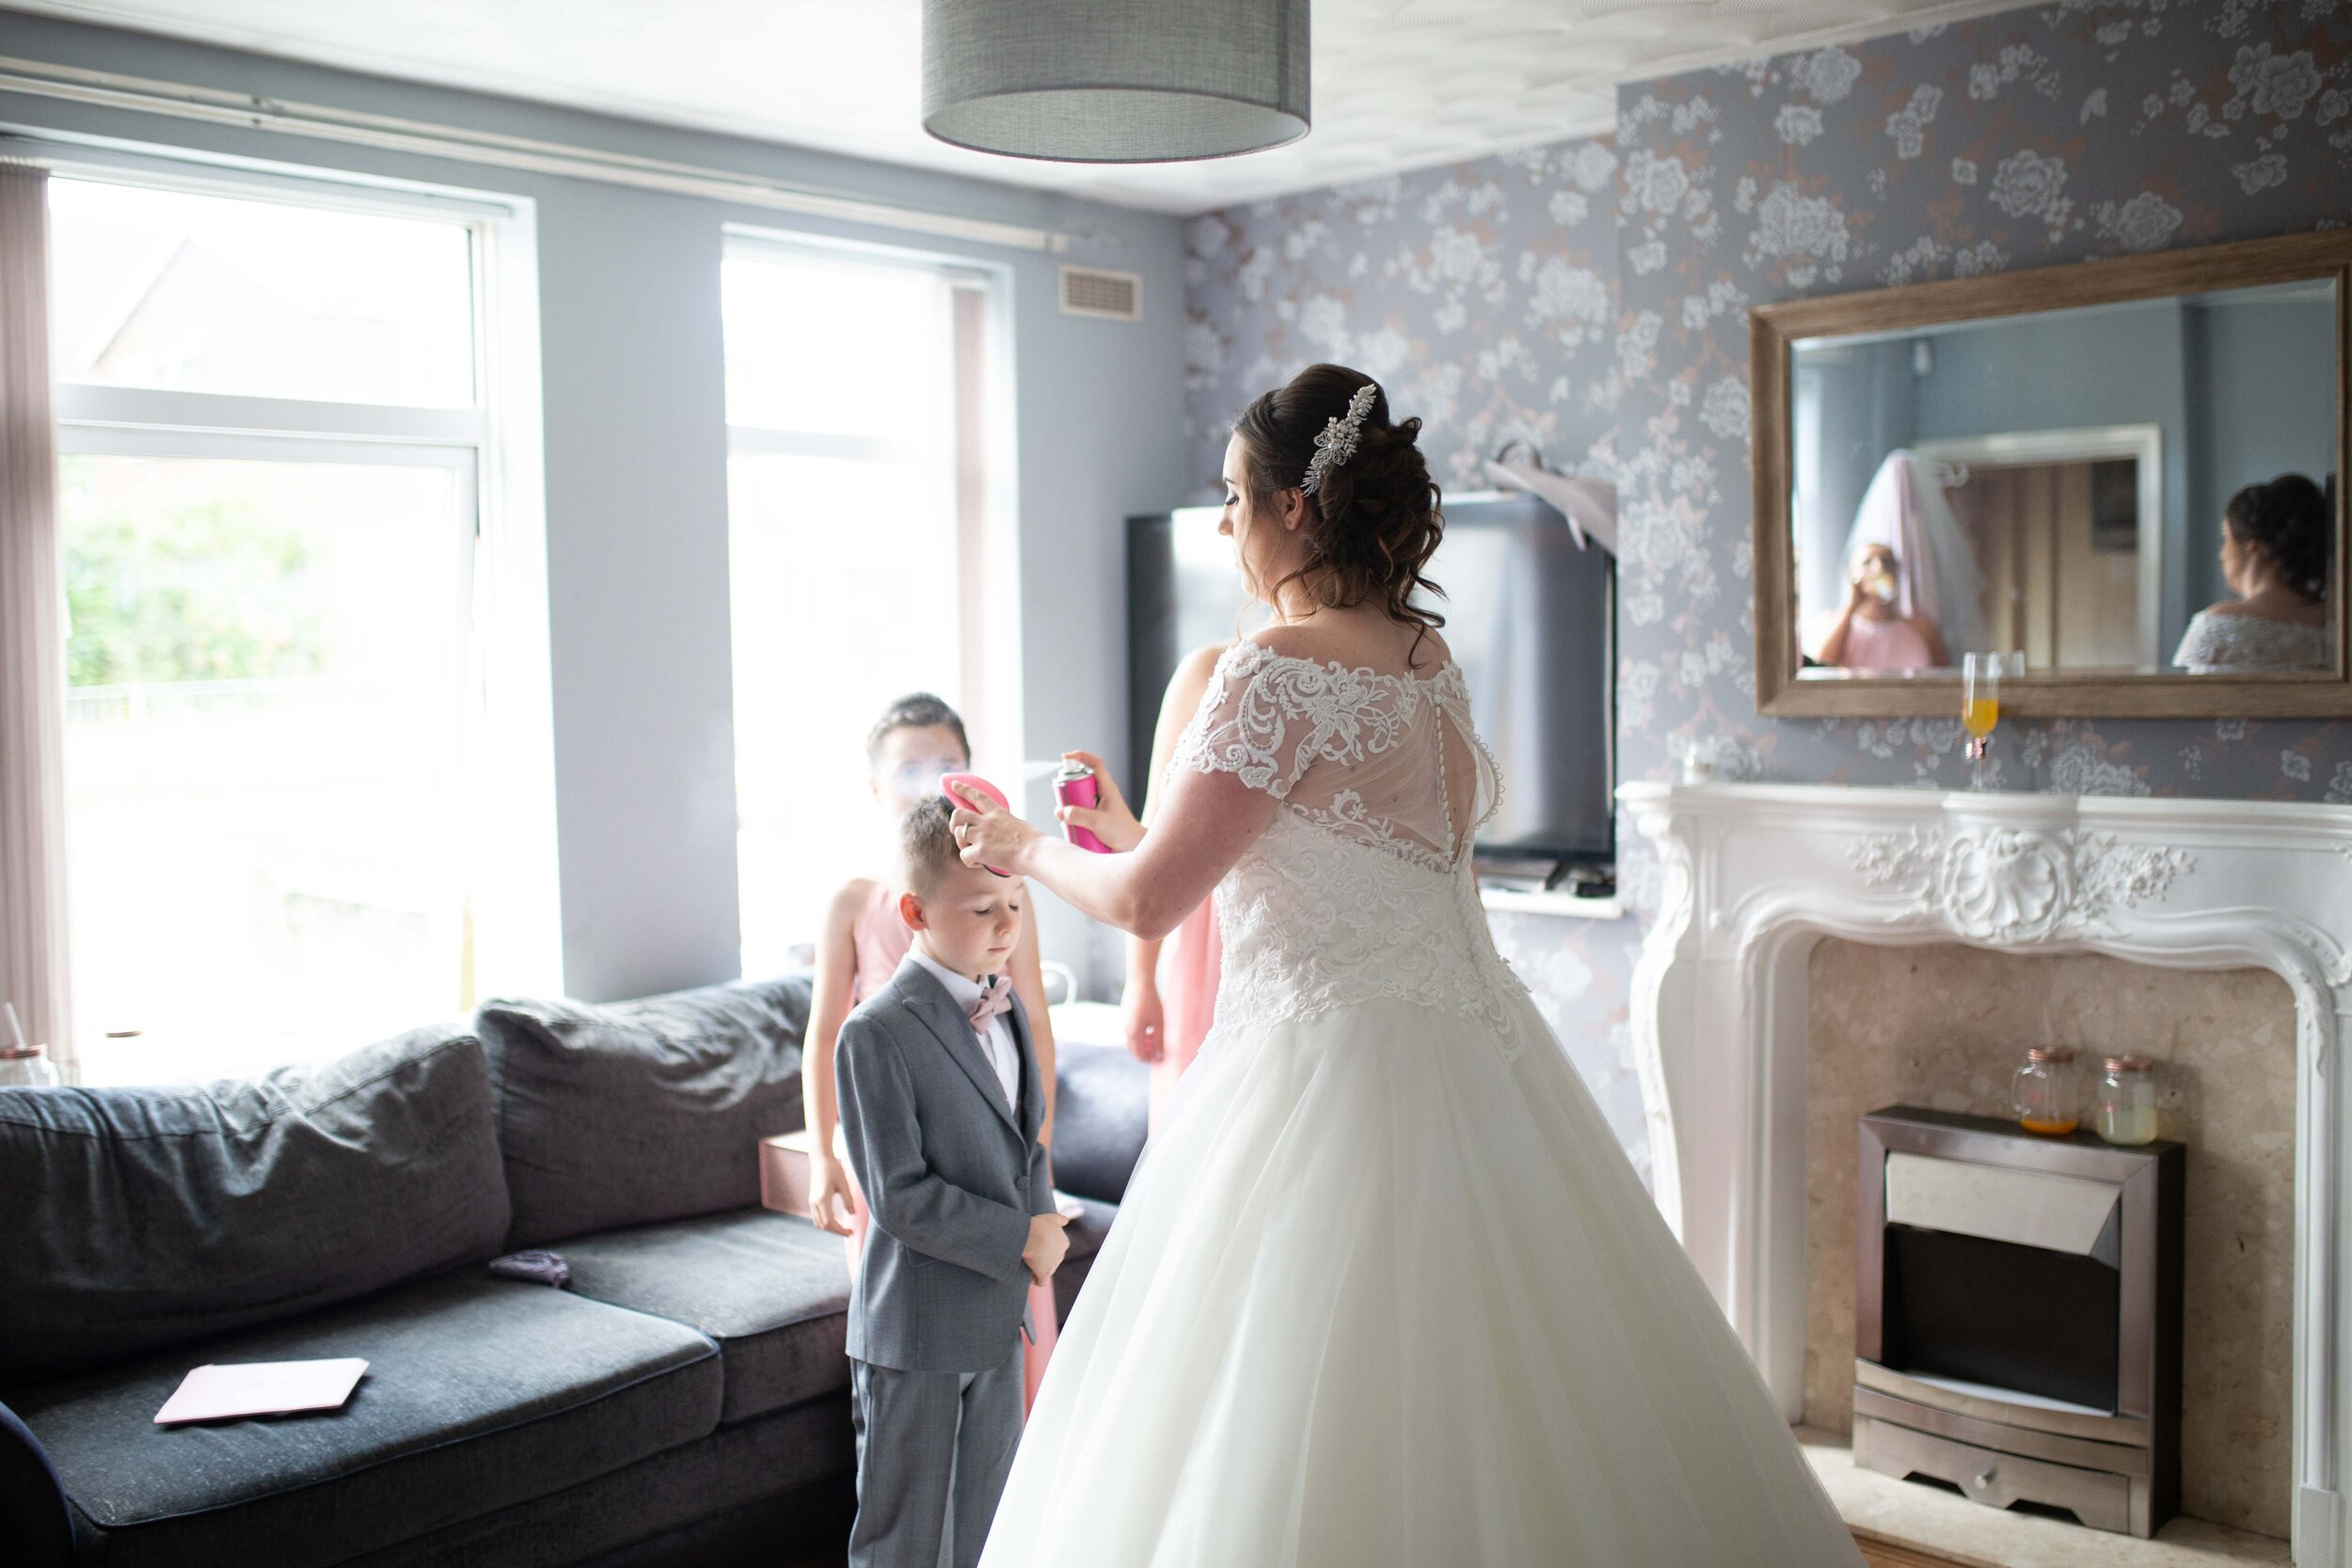 Lea Cooper photography - wedding photography - st Lawrence church dalaston West Midlands Willenhall Wednesday wedding photographer Brookfields club house cannock road - 8.JPG